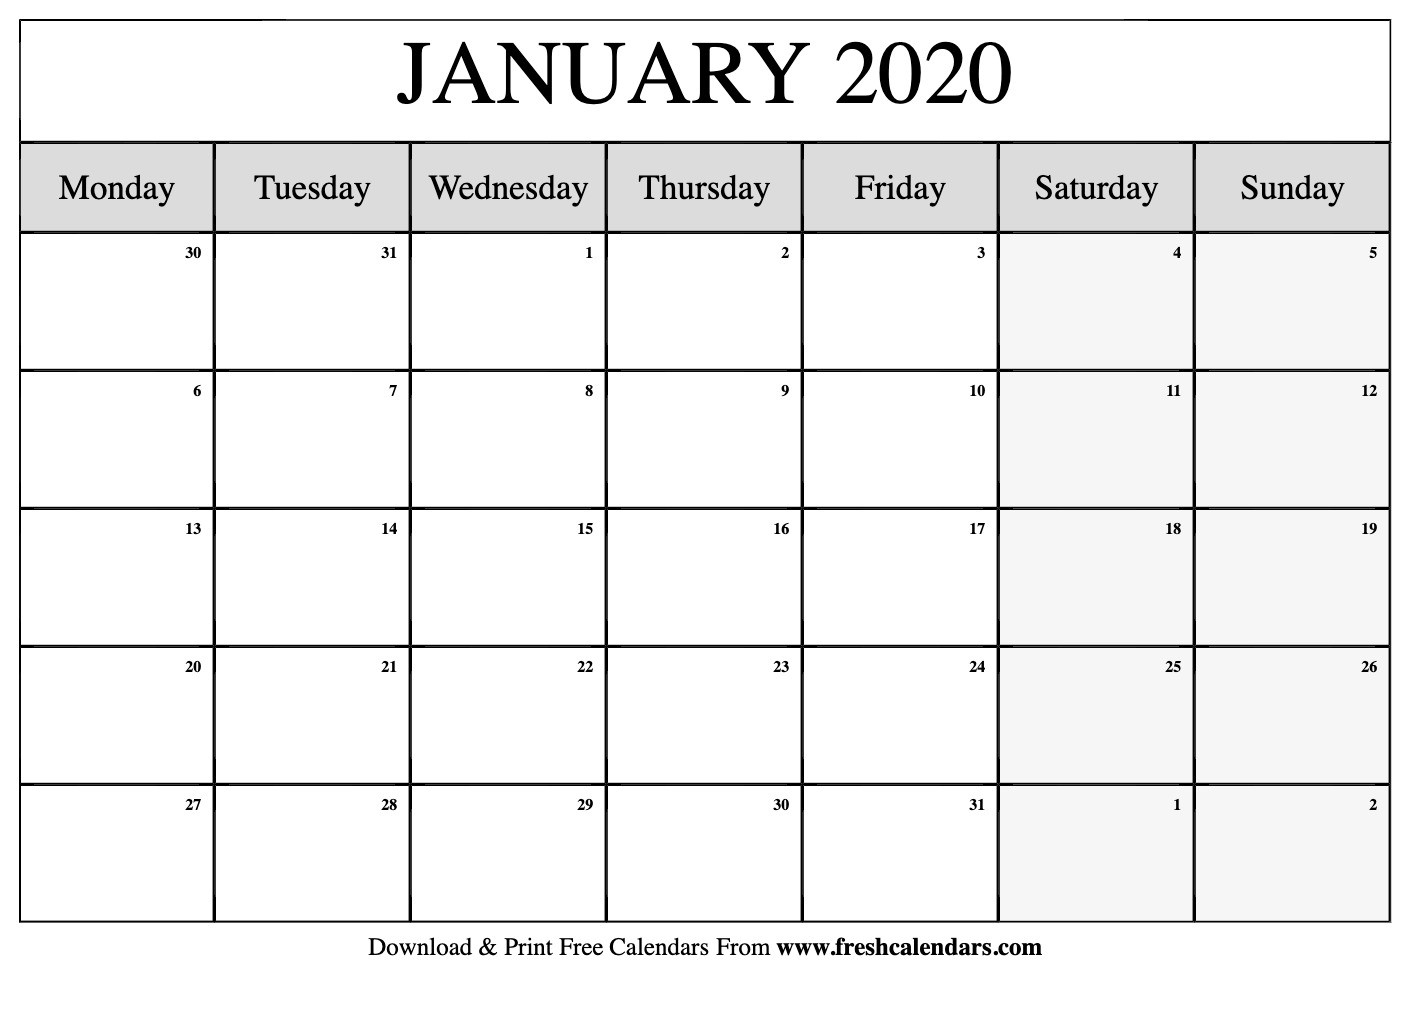 Free Printable January 2020 Calendar-2020 Monthly Calendars Starting With Monday